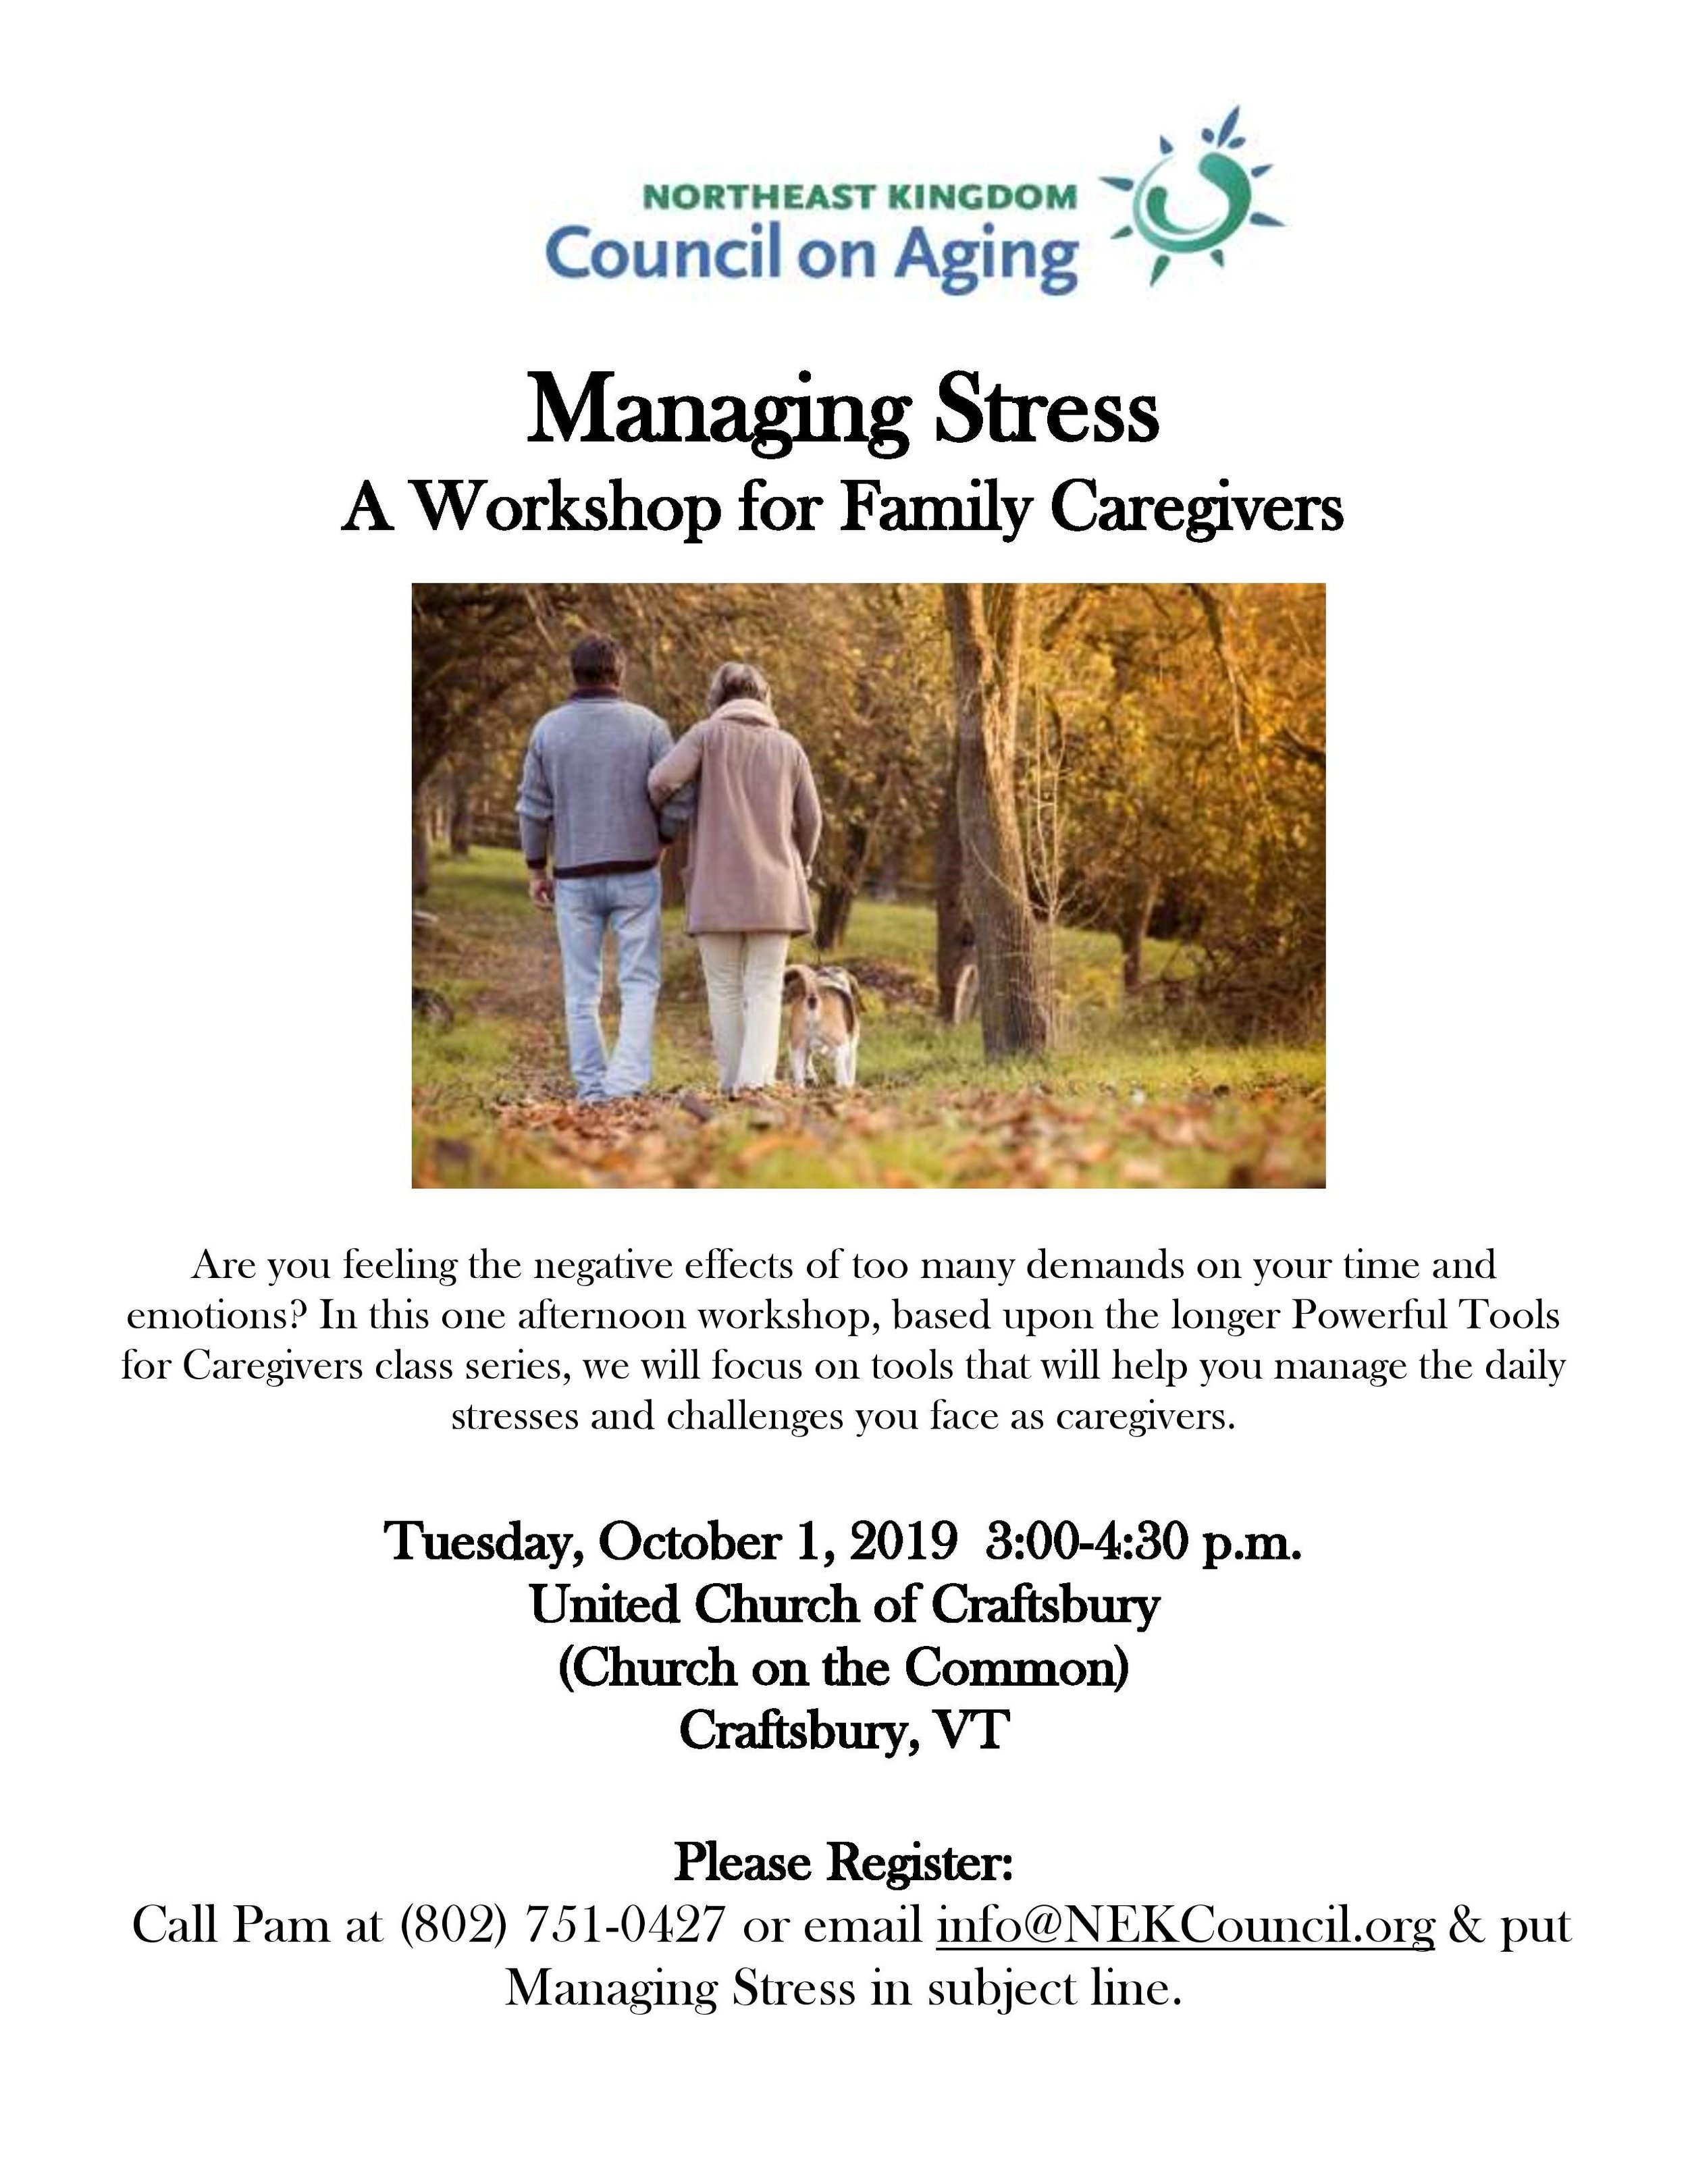 Managing Stress Oct 1 2019 flyer (1)-page-001.jpg